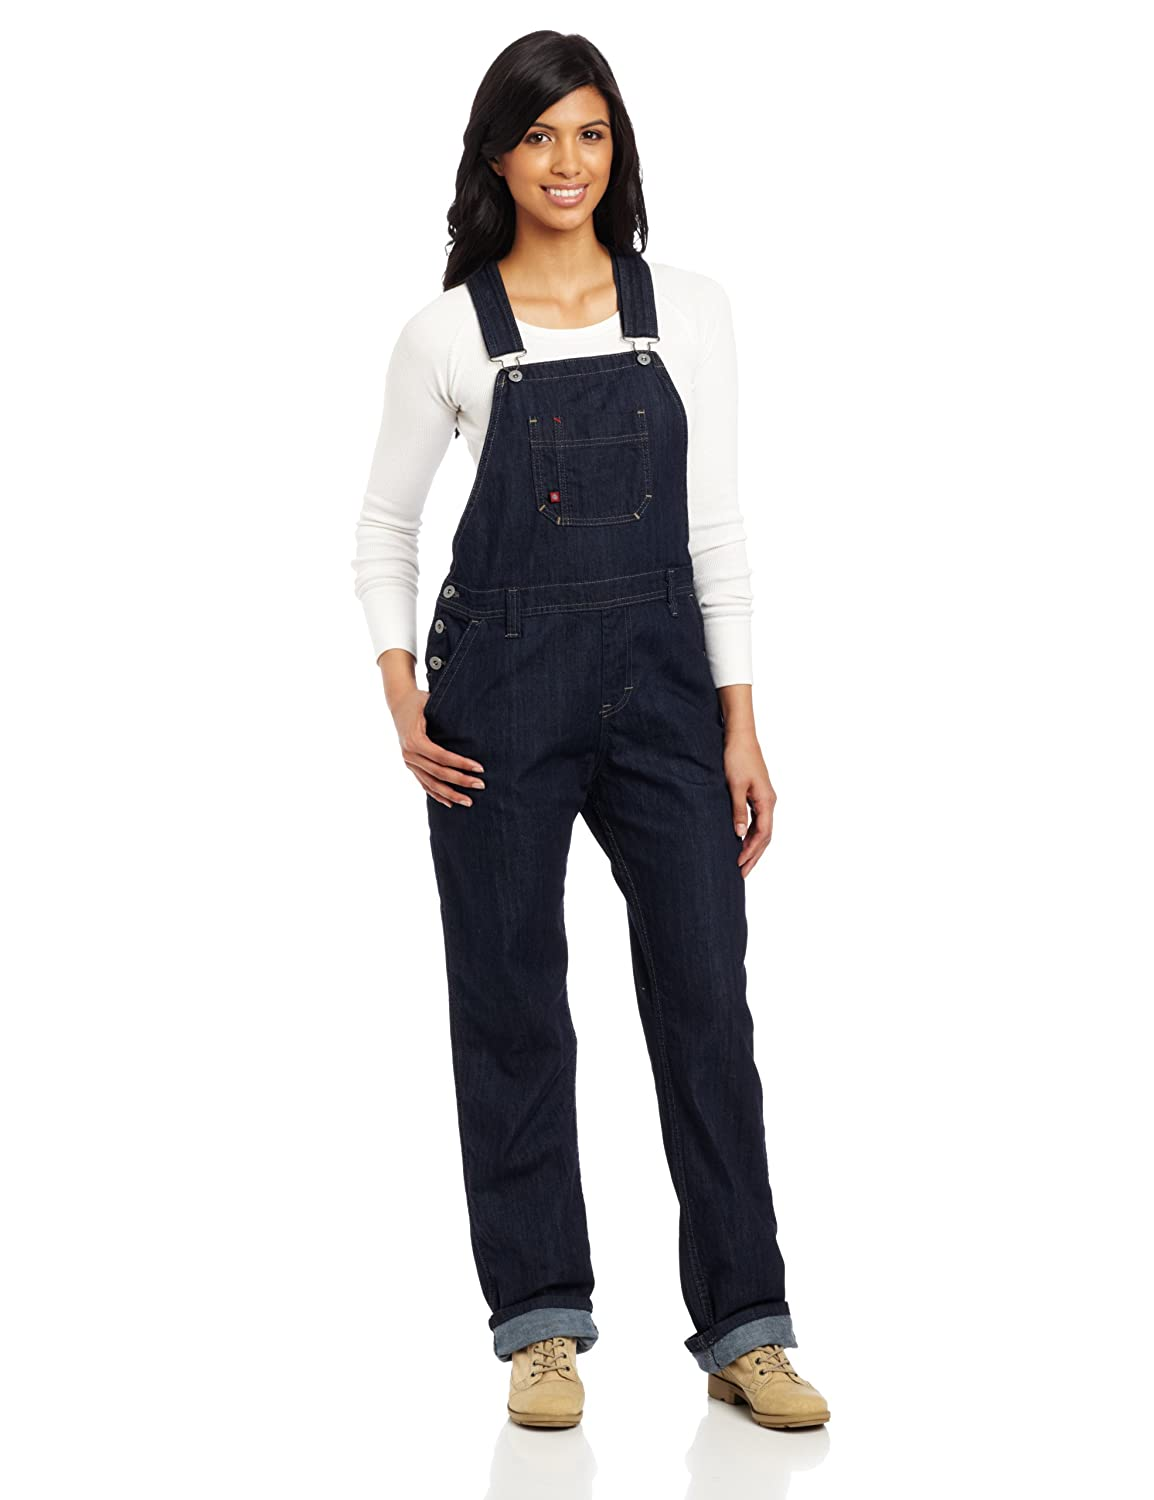 Vintage Overalls 1910s -1950s History & Shop Overalls Dickies Womens Denim Bib Overall $44.99 AT vintagedancer.com